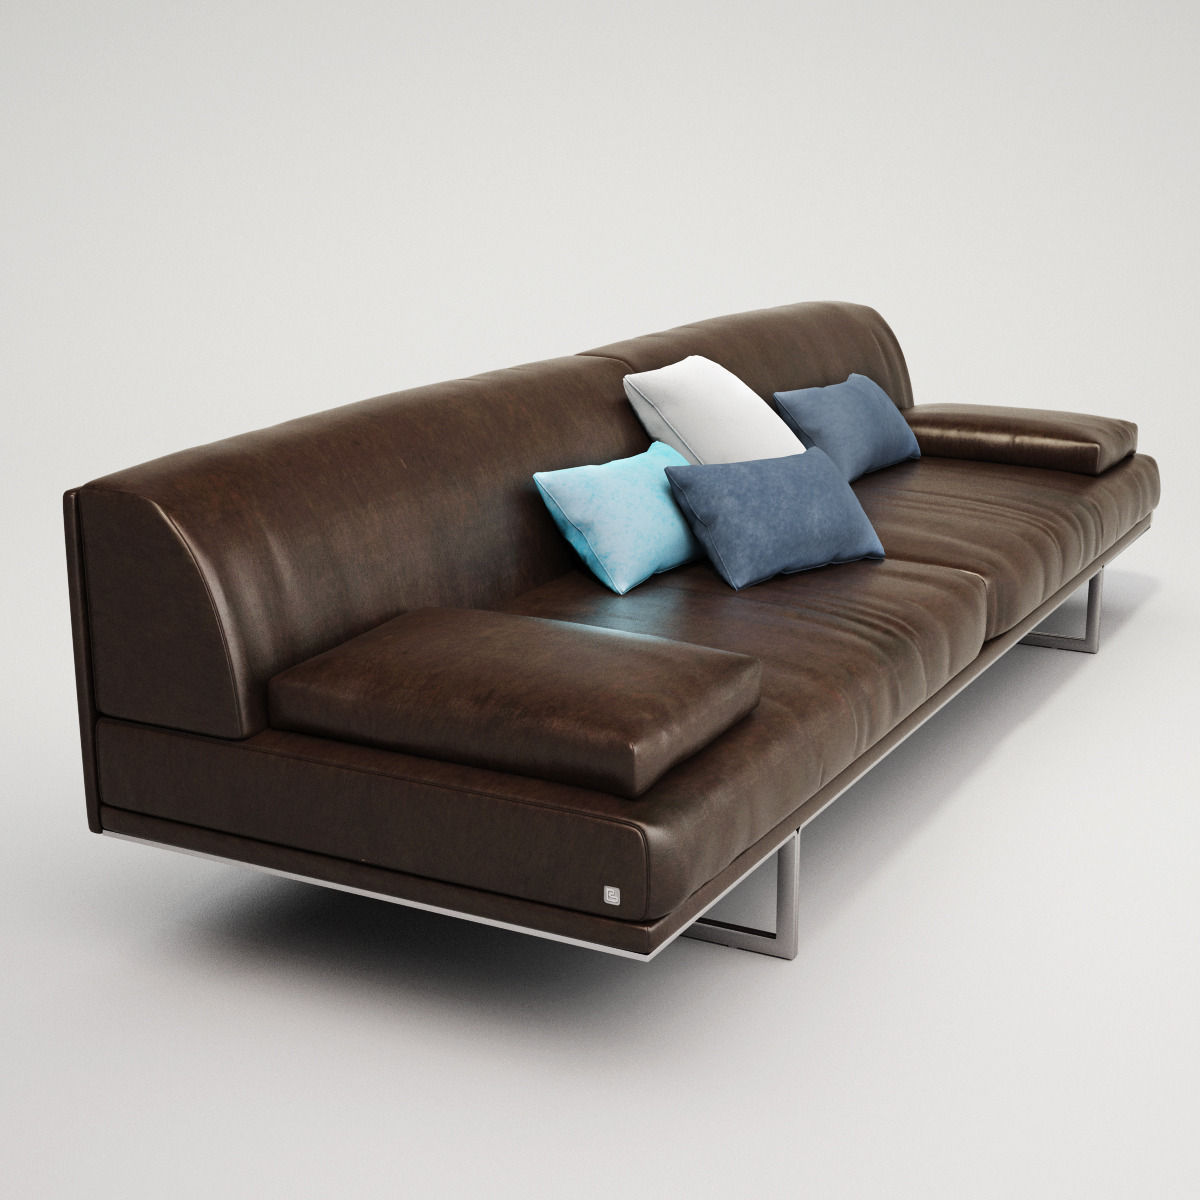 Busnelli blumun sofa collection 3d model max obj fbx for Sofa 3d model